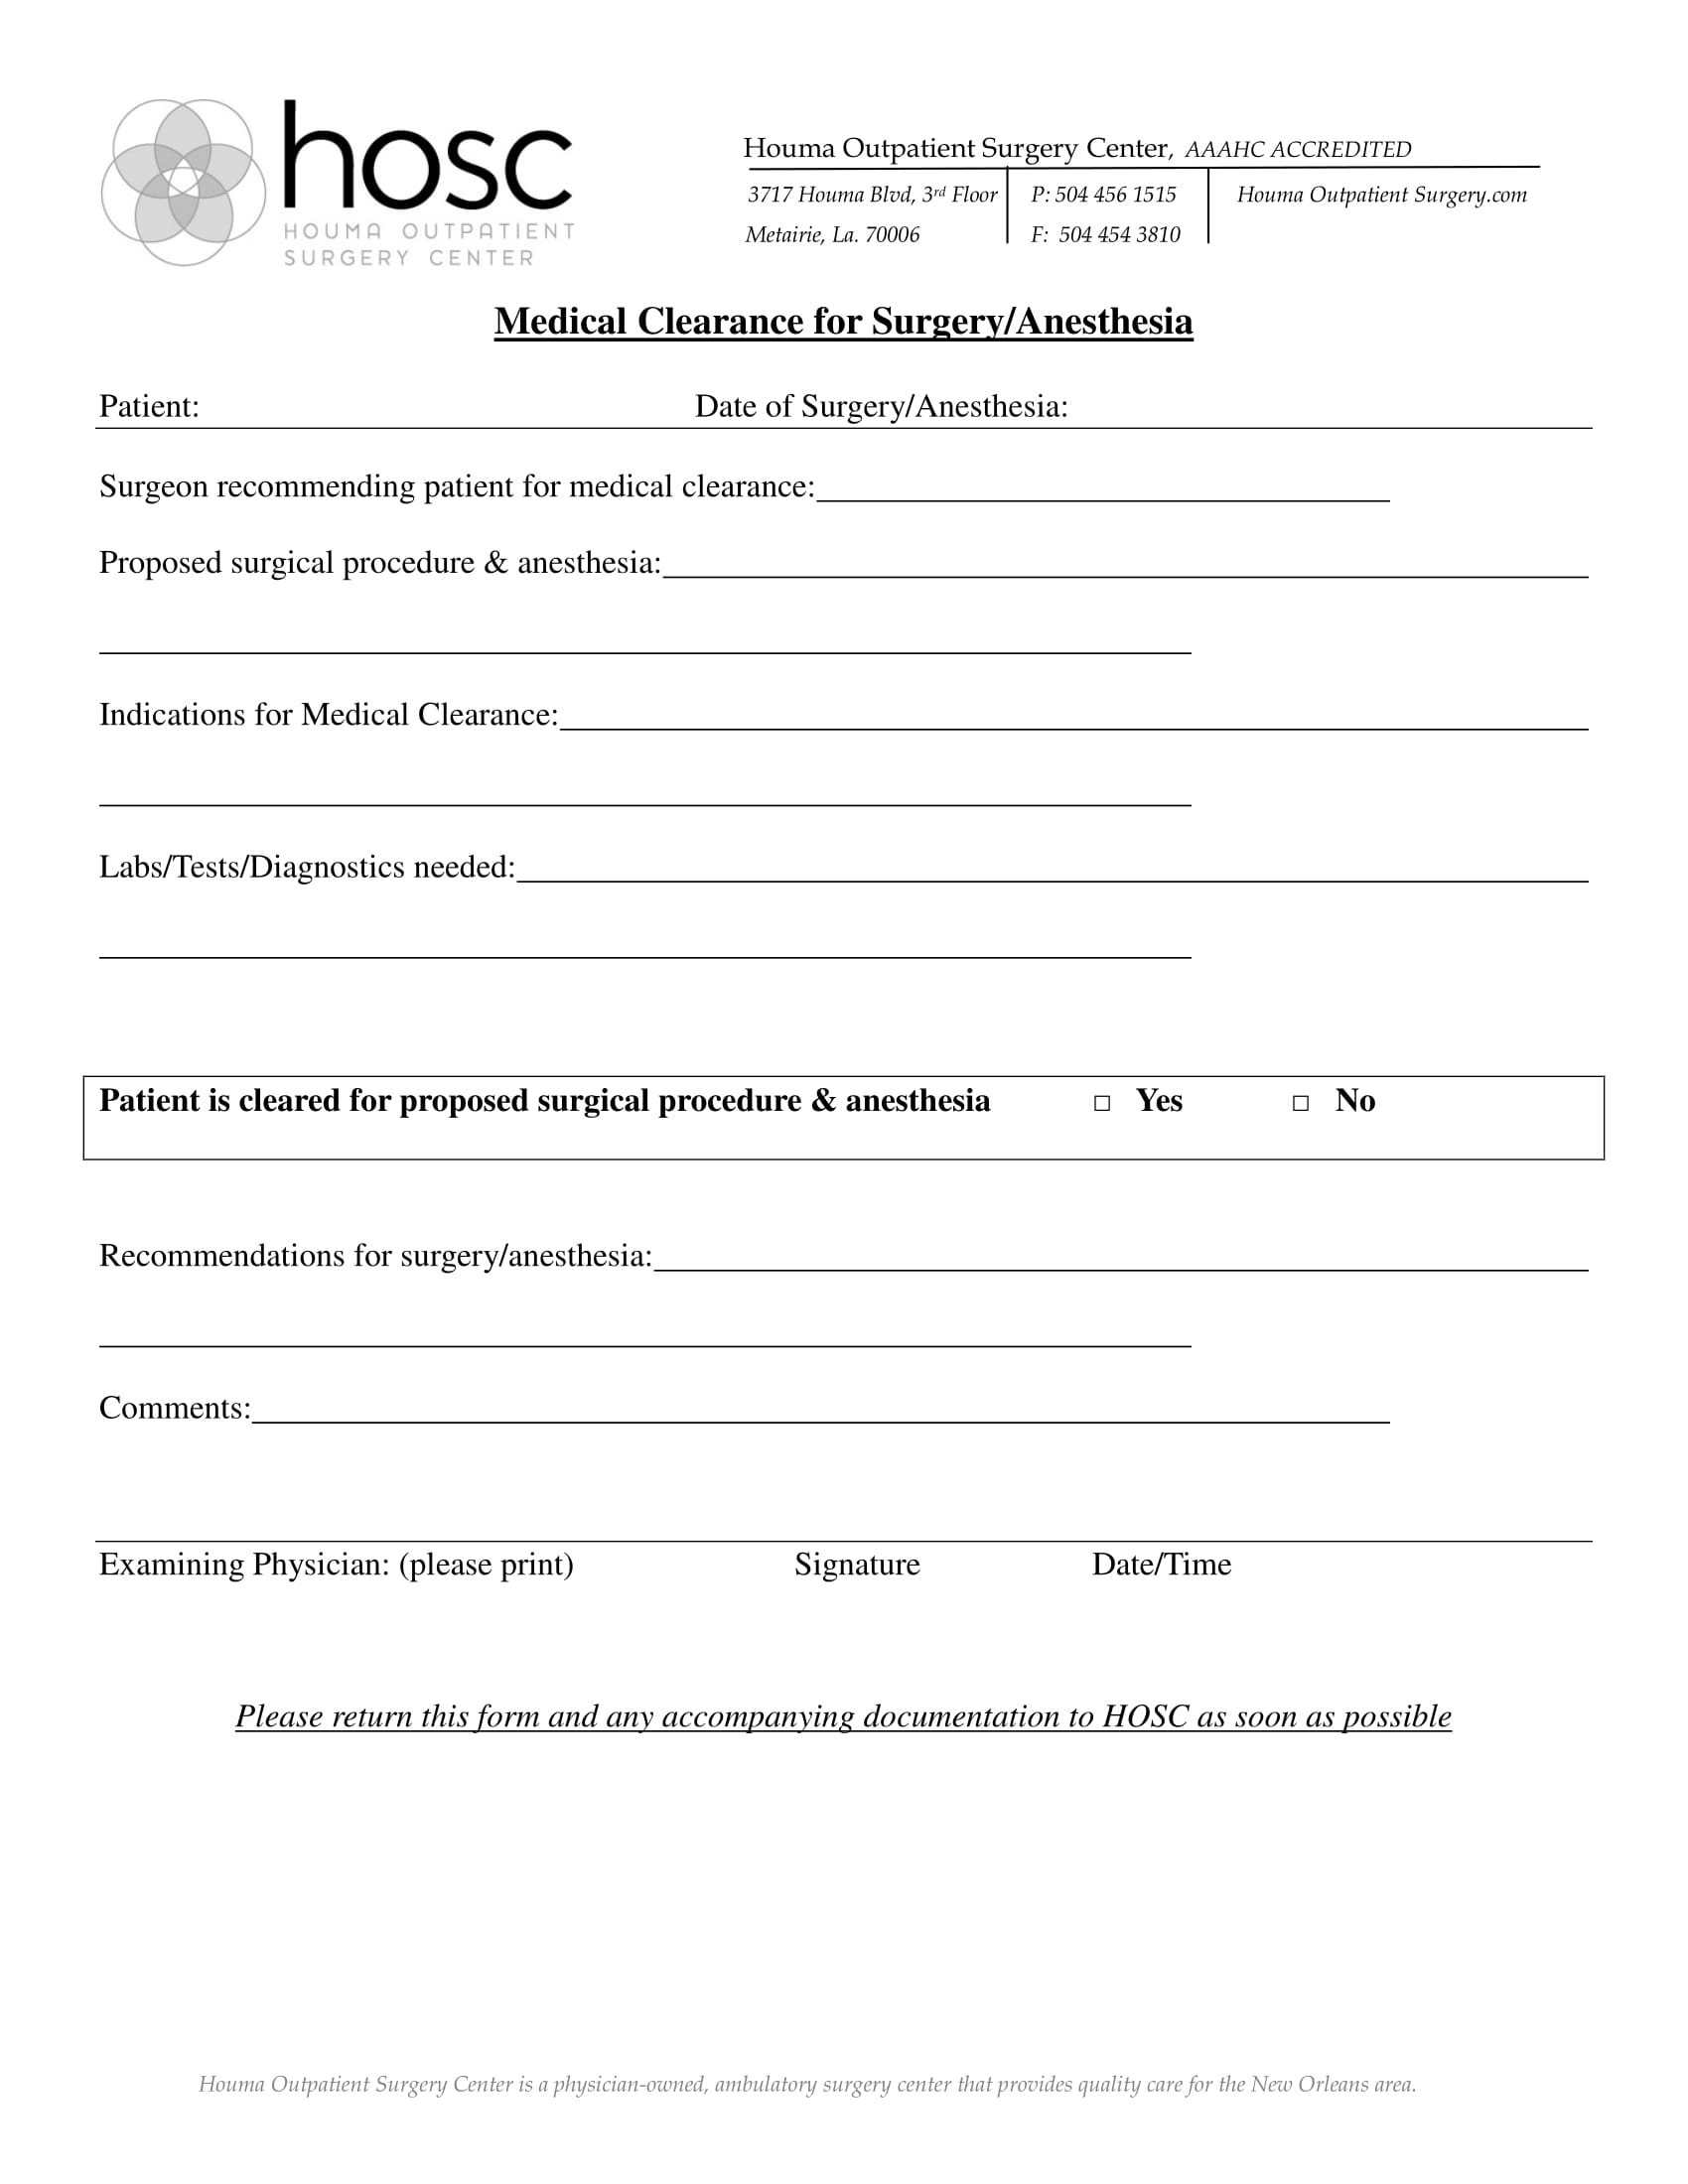 surgery anesthesia medical clearance form 1